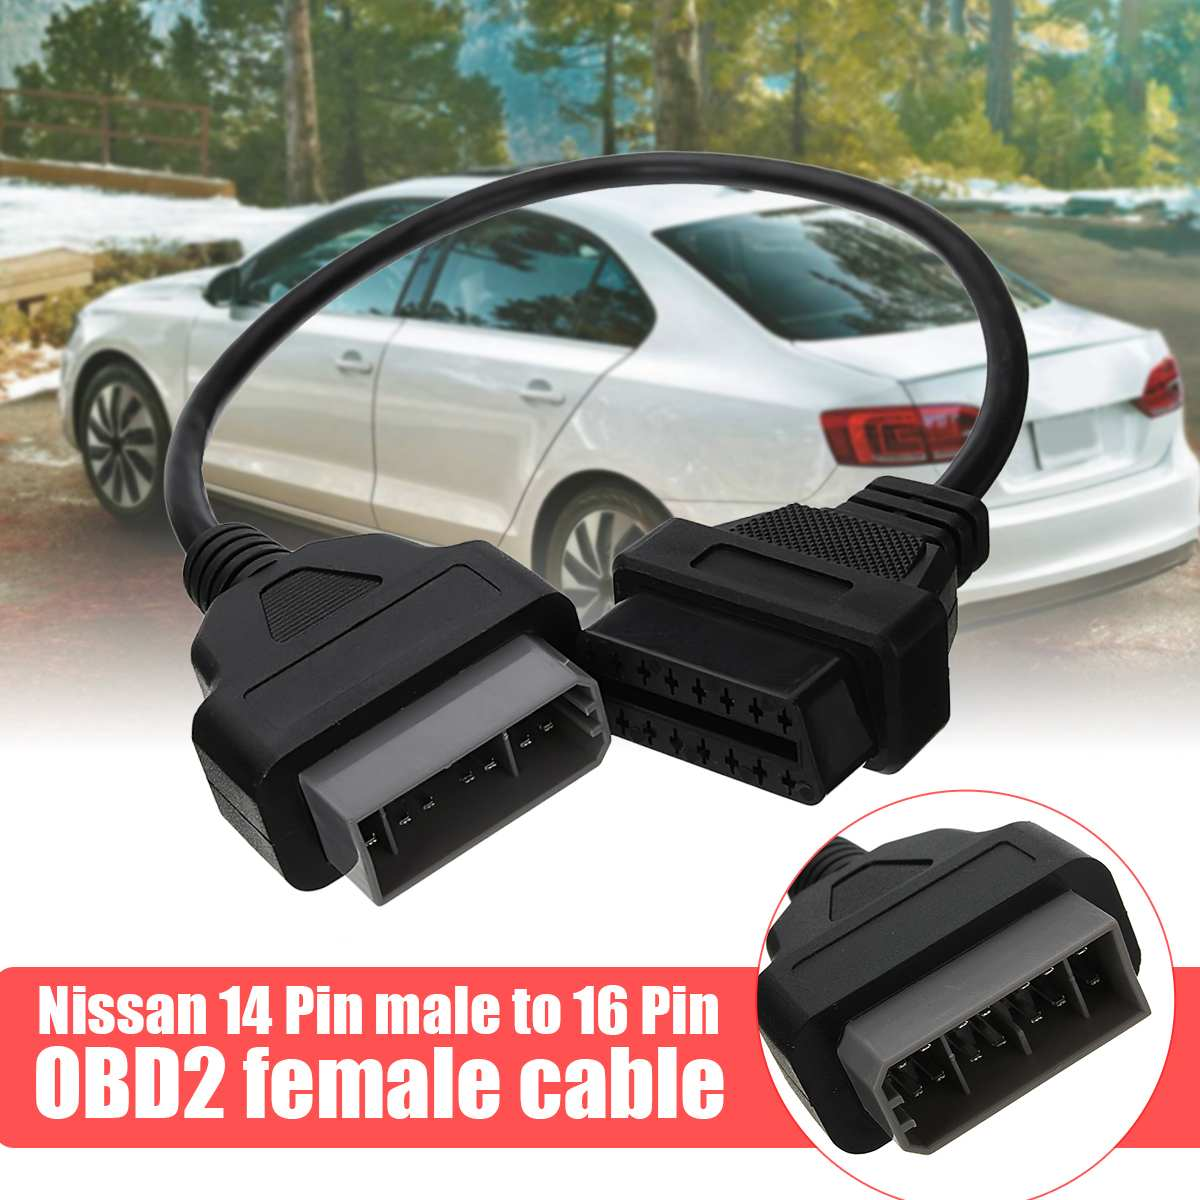 For Nissan <font><b>14</b></font> <font><b>Pin</b></font> To 16Pin Cable OBD II Diagnostic Interface 14Pin To <font><b>OBD2</b></font> 16 <font><b>Pin</b></font> <font><b>Adapter</b></font> Works For Auto Car Vehicles image